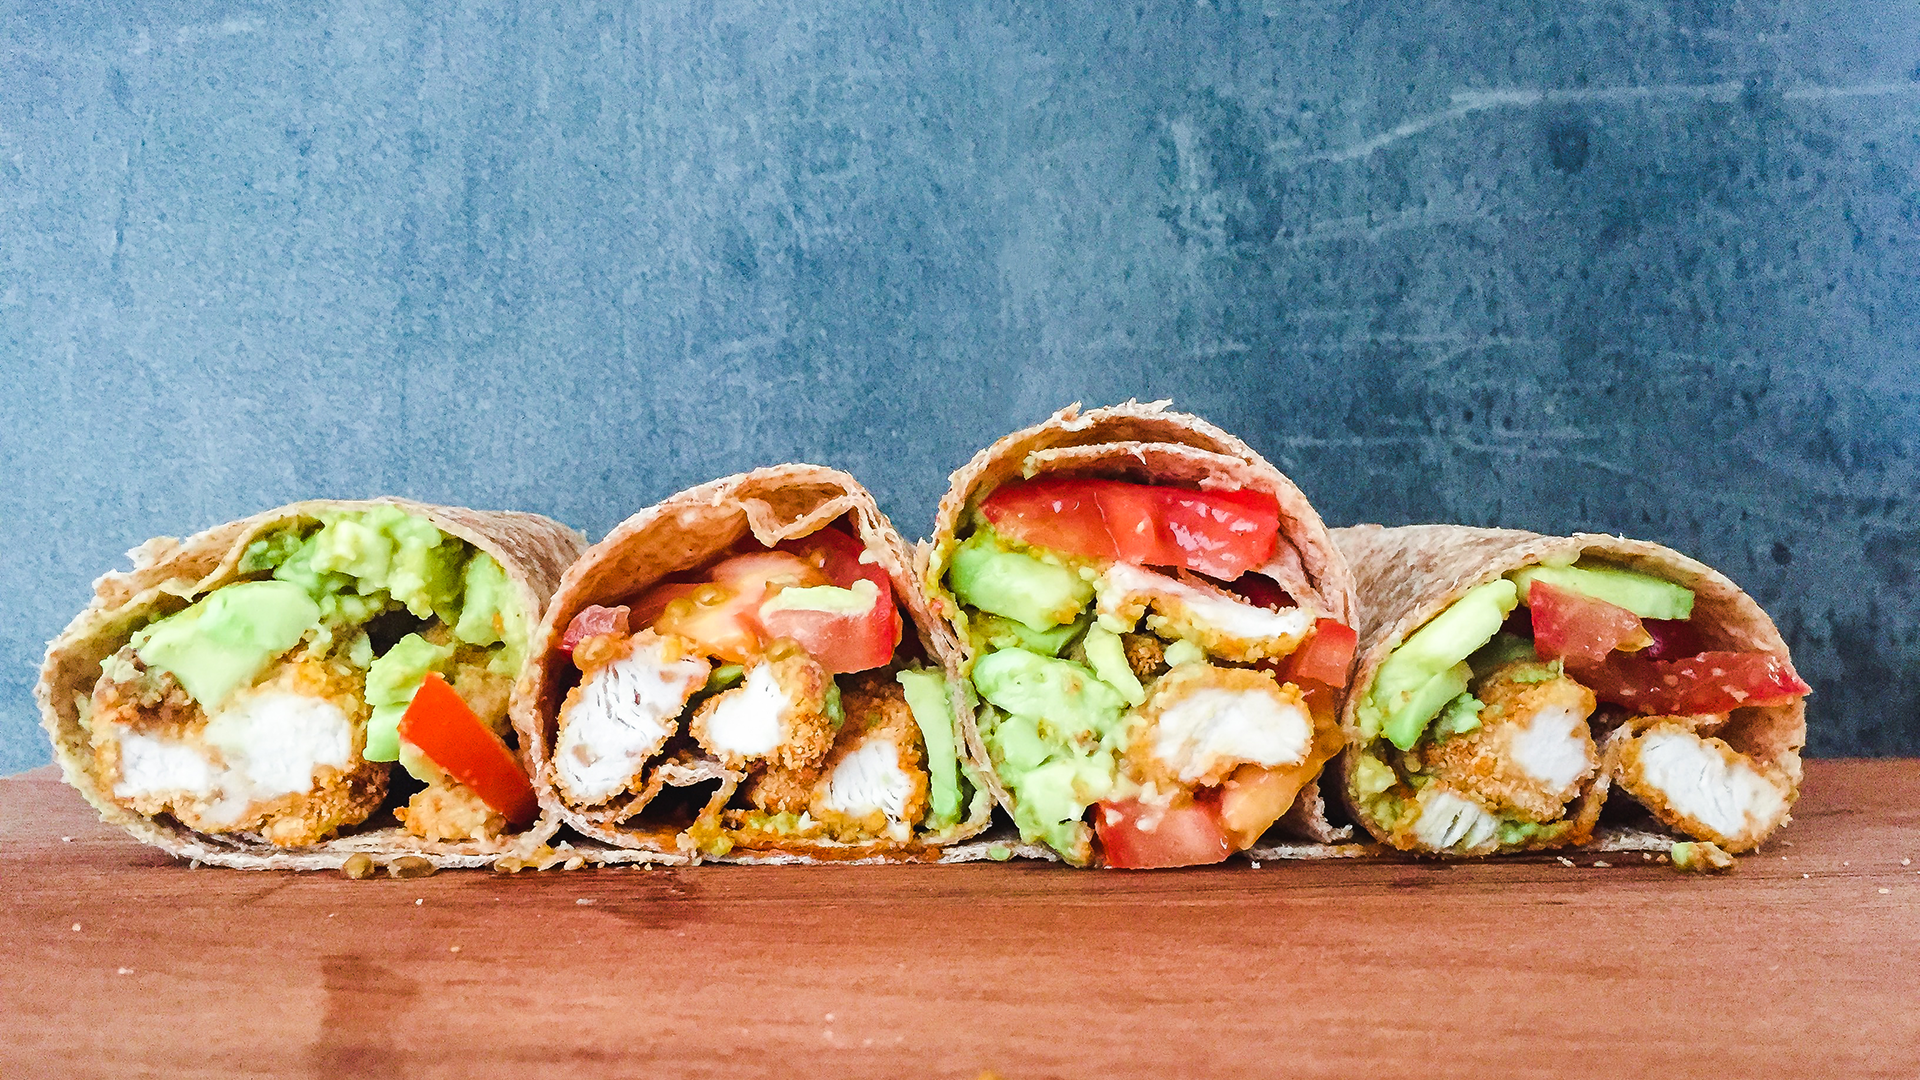 High Protein Wholemeal Wrap with Tomato, Avocado and Oven Baked Crispy Chicken Thumbnail